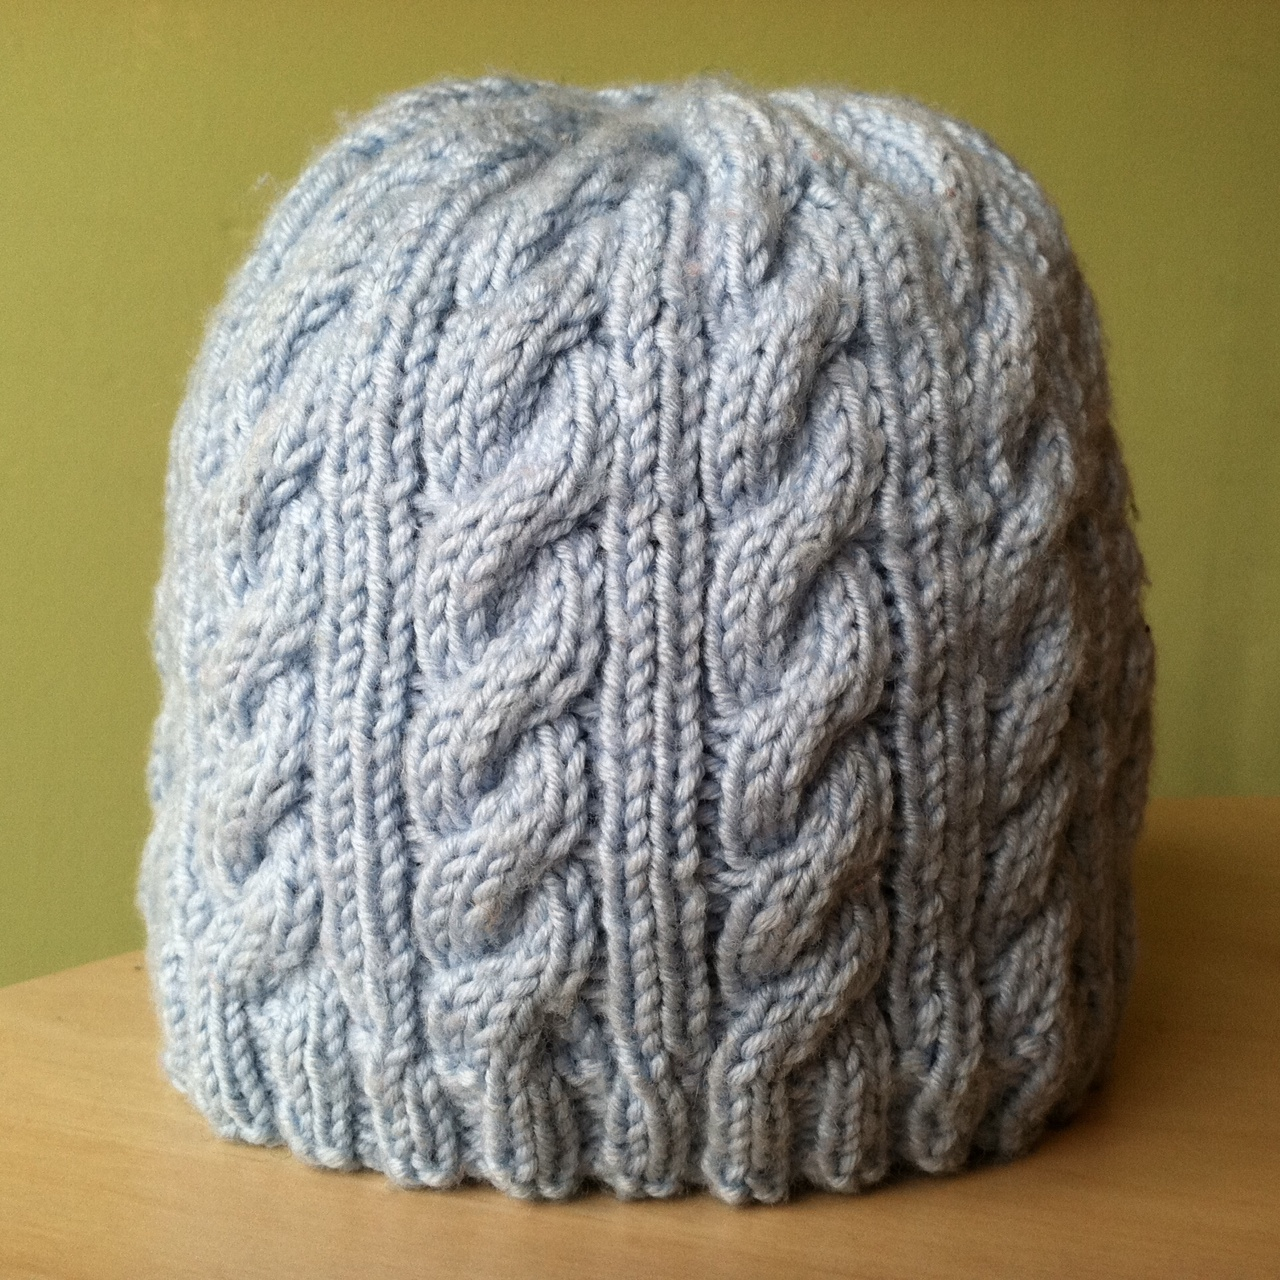 The Yarn Garden Blog  Upcoming Class  Easy Baby Cable Knit Hat d57e2d0c32f